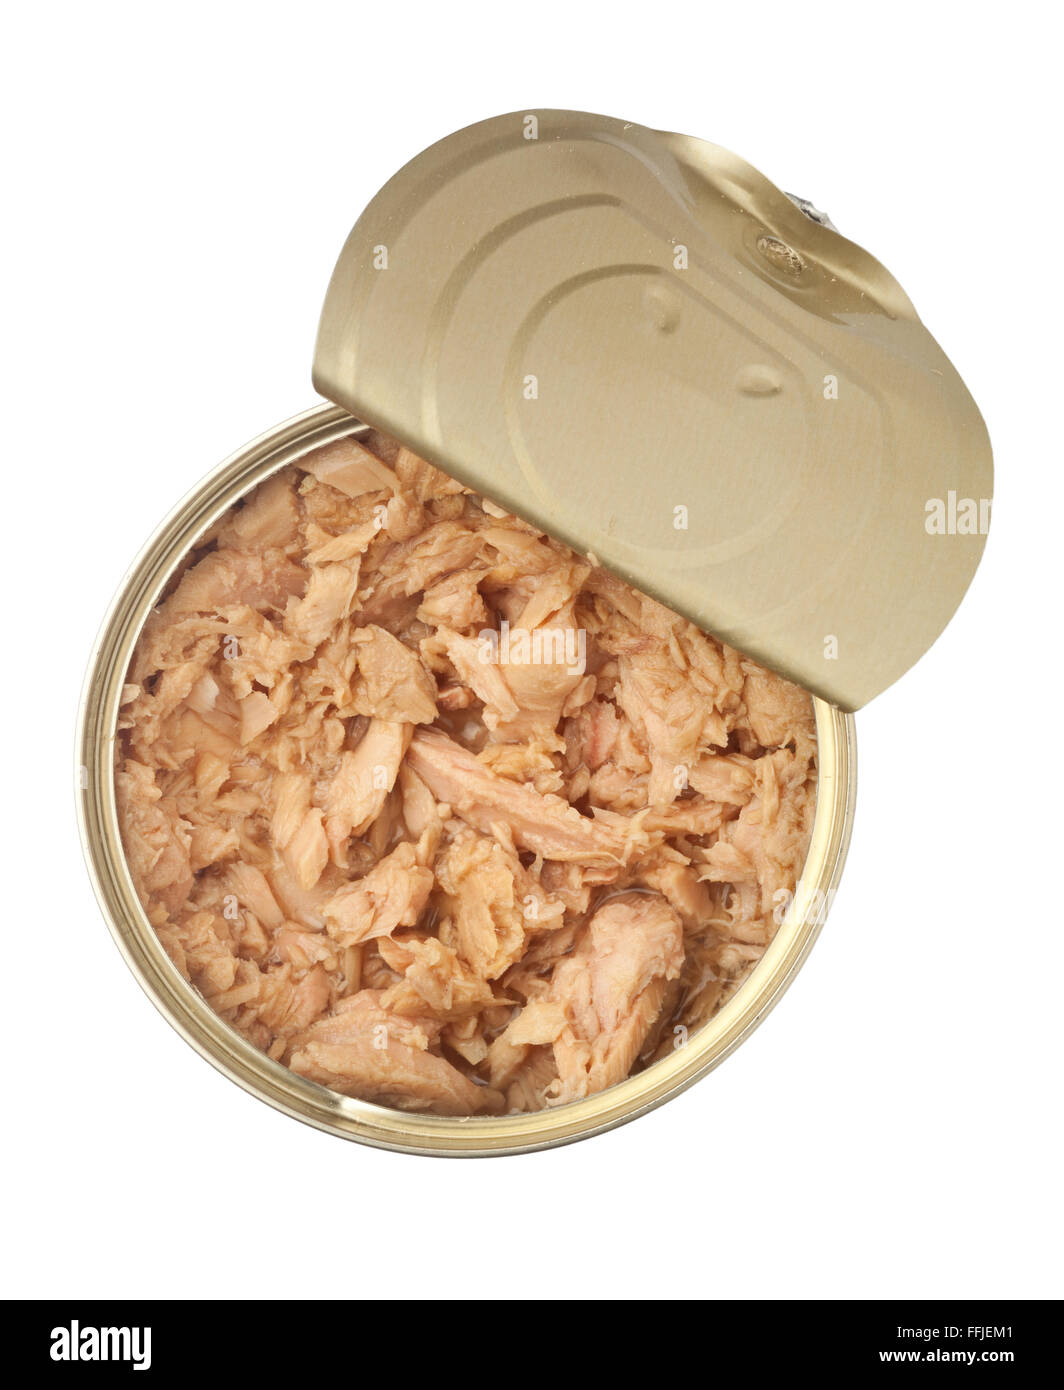 Opened can of flaked tuna isolated on white background Stock Photo